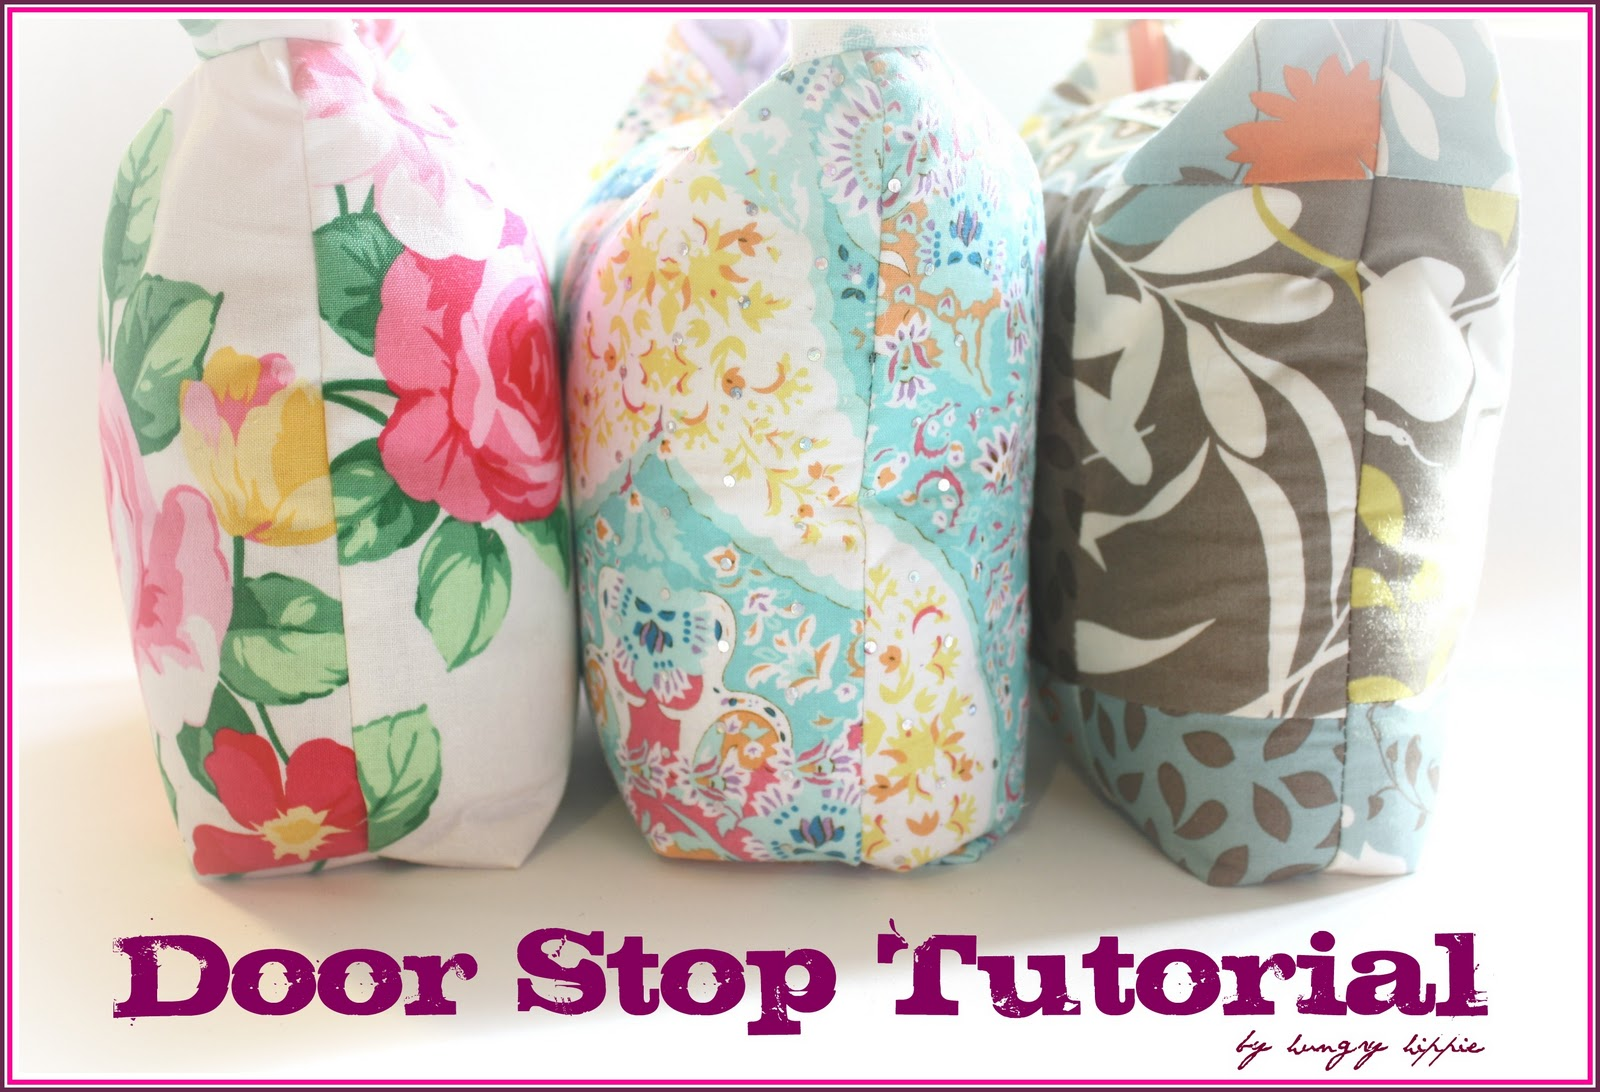 """This door stop is pretty simple for the advanced beginner. It does have a zipper, but no special sewing feet or tools were used to put the zipper in. As an option, you could leave out the zipper and just attach ribbons or ties for closure."